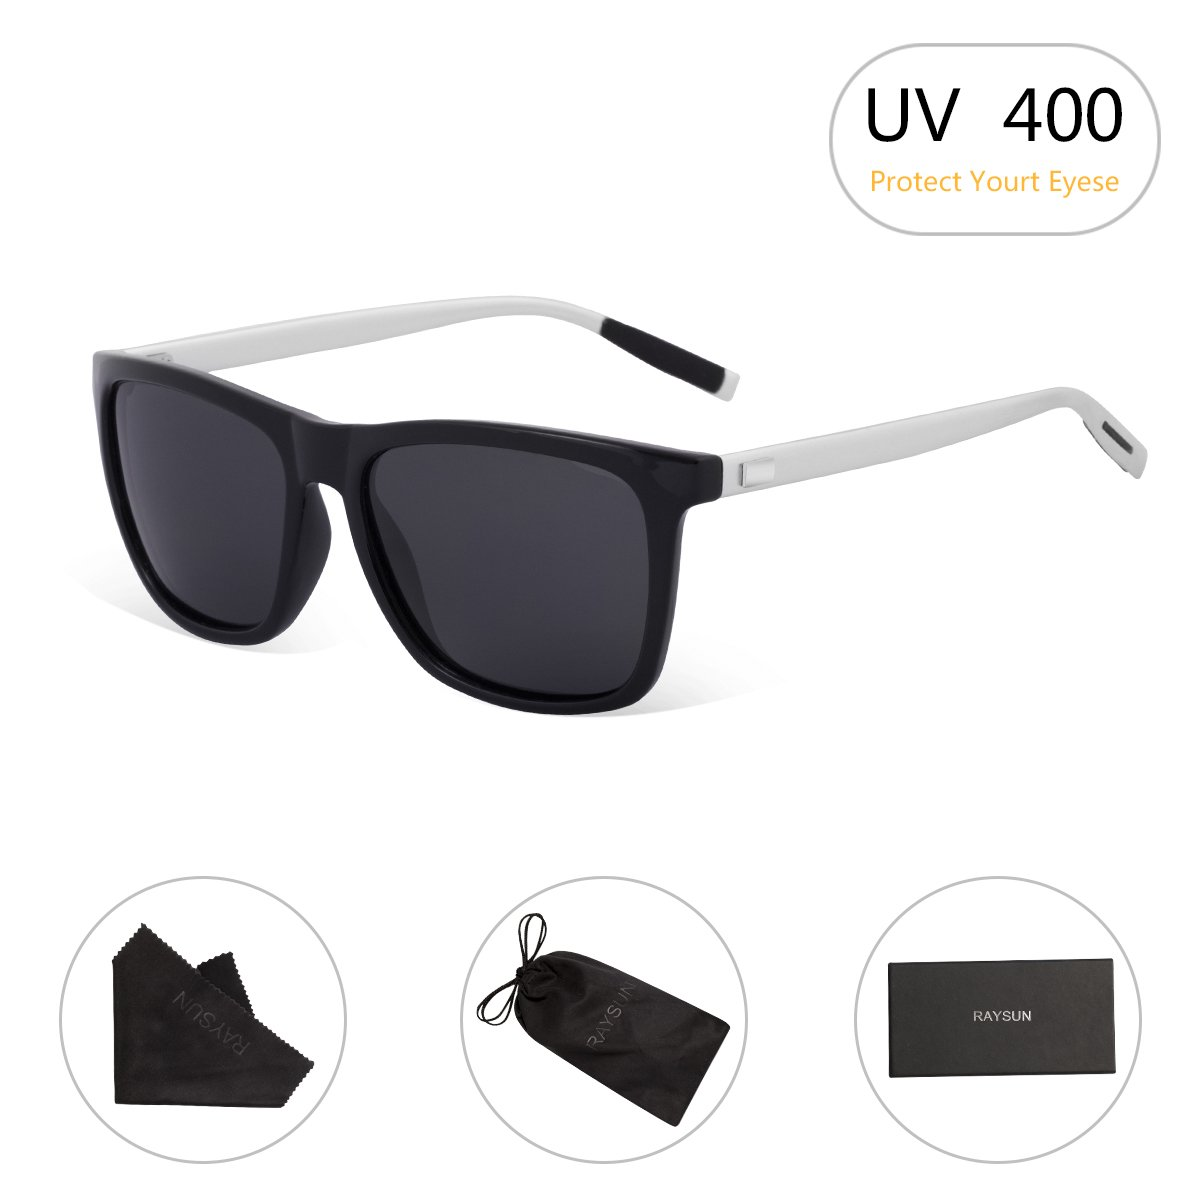 9435718acf14 Polarized Safety Sunglasses – 100% UV400 protection coating that can block  100% harmful UVA   UVB Rays. Restore true color